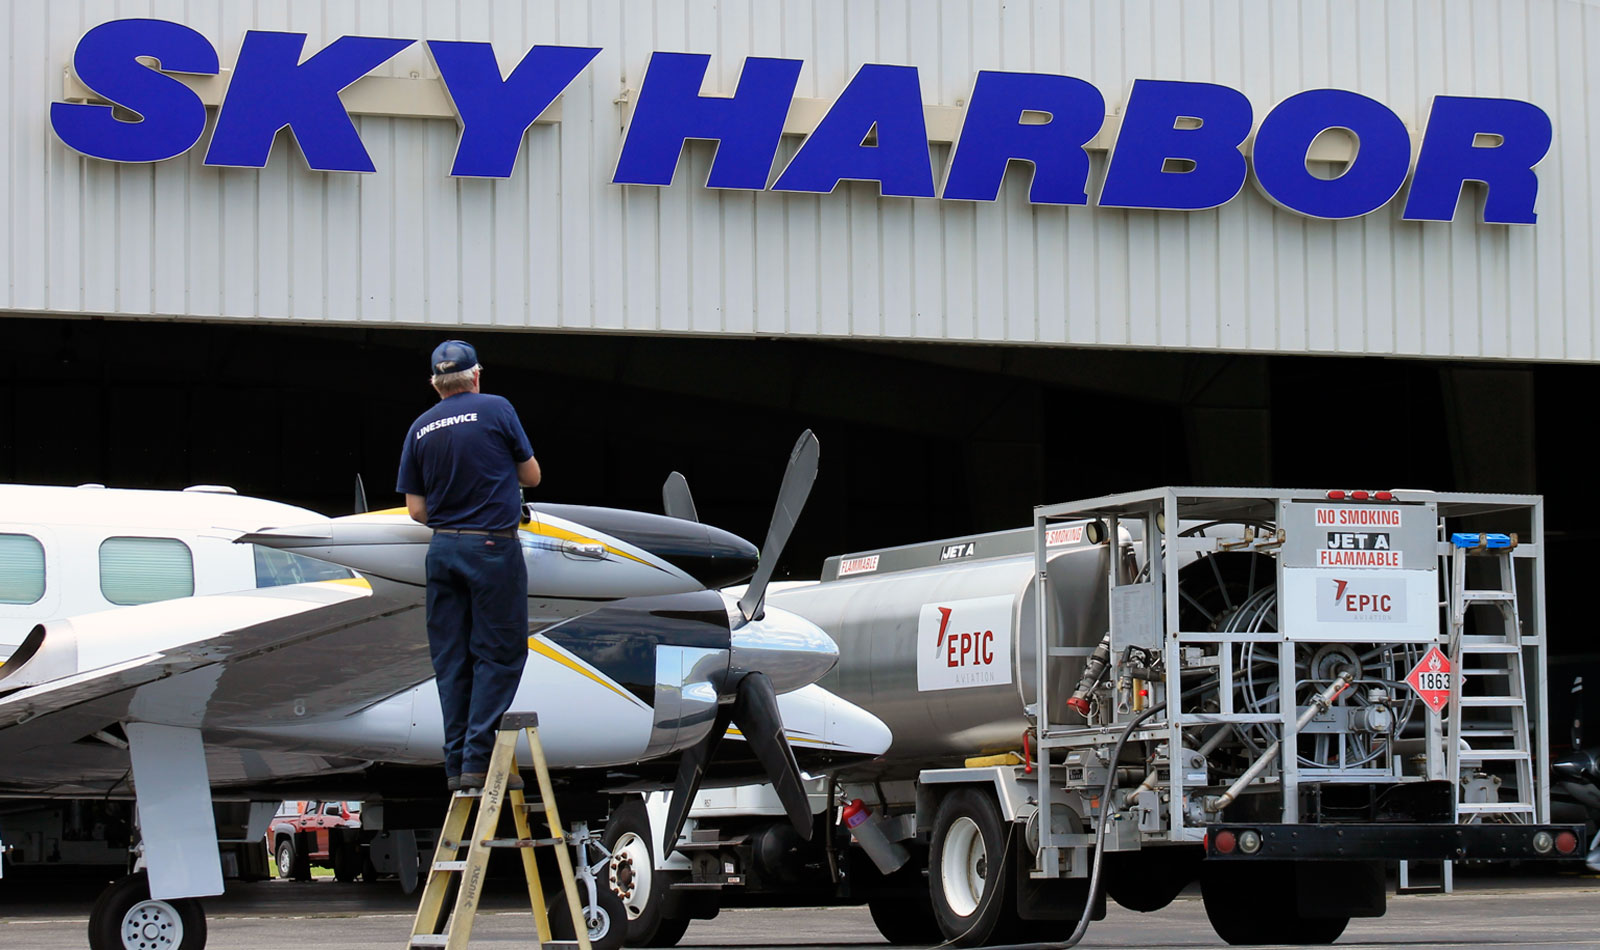 About Sky Harbor Aviation